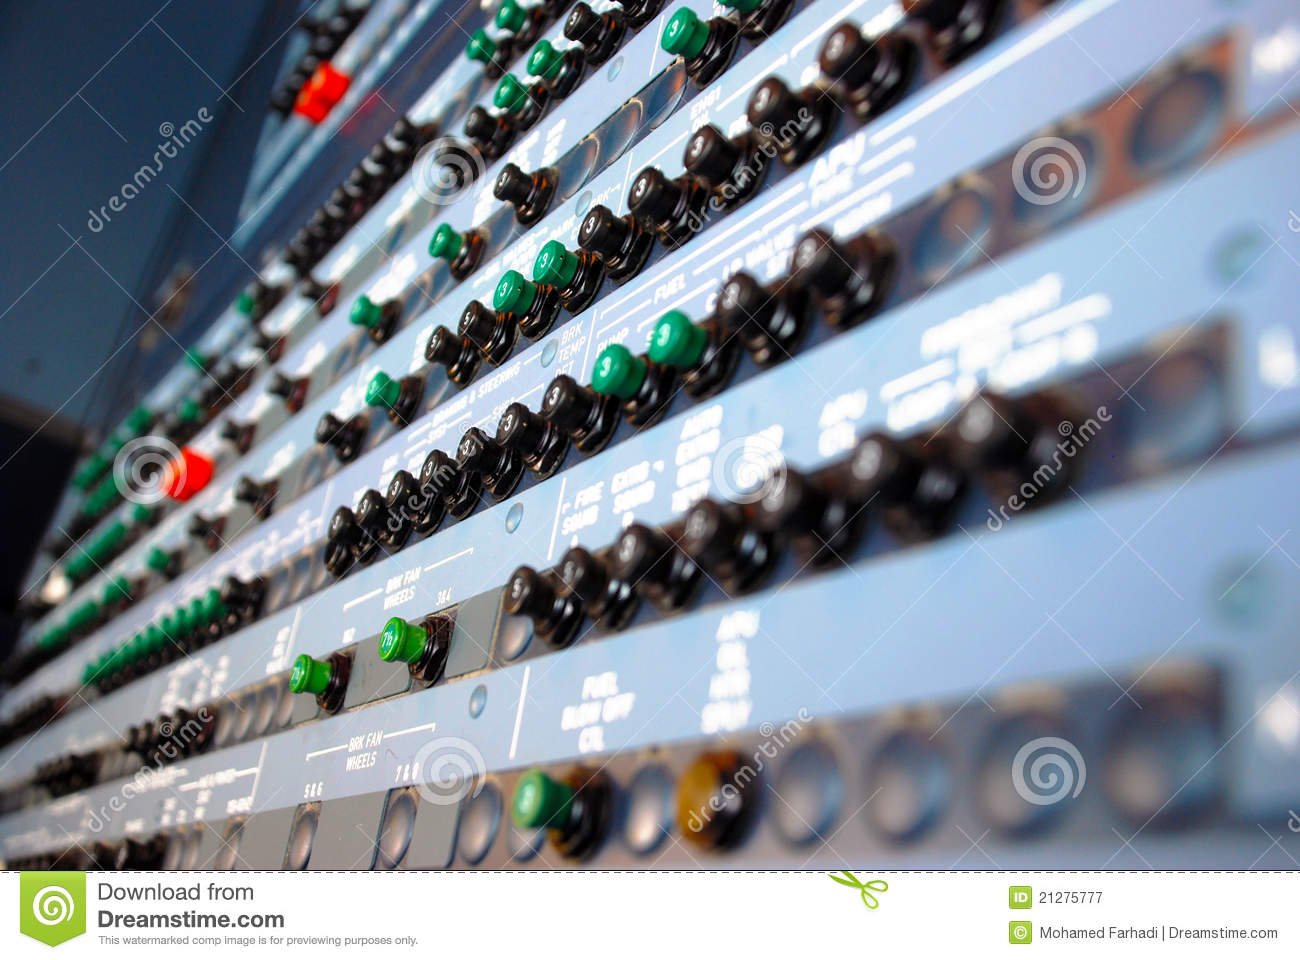 Circuit Breaker Cabinet Aircraft Circuit Breakers Panel Royalty Free Stock Photography